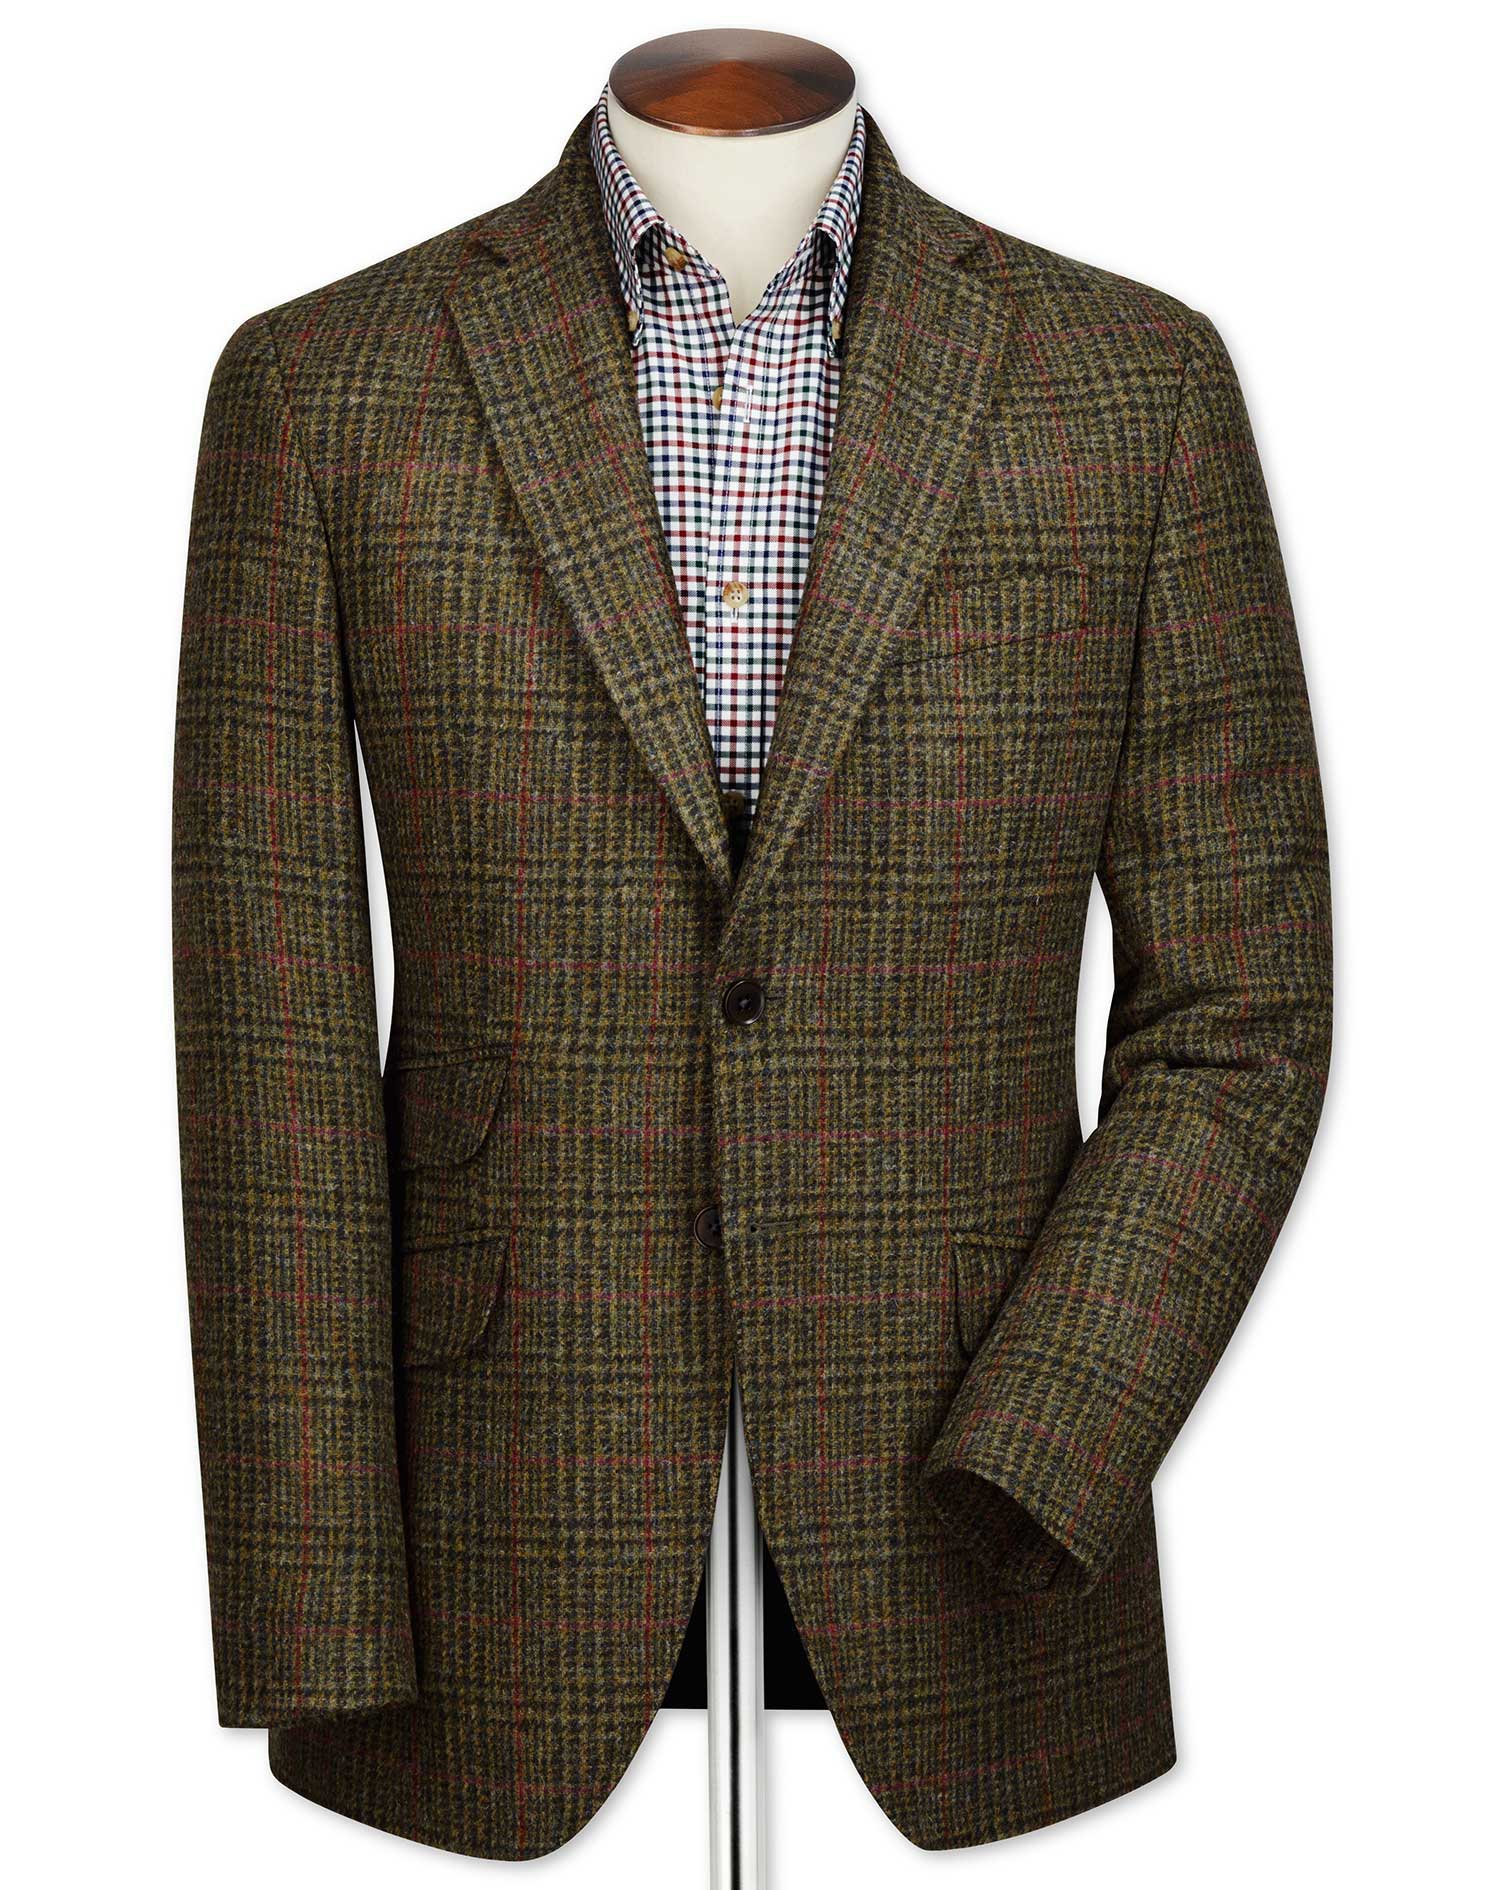 Slim Fit Green Checkered British Tweed Wool Jacket Size 42 Short by Charles Tyrwhitt